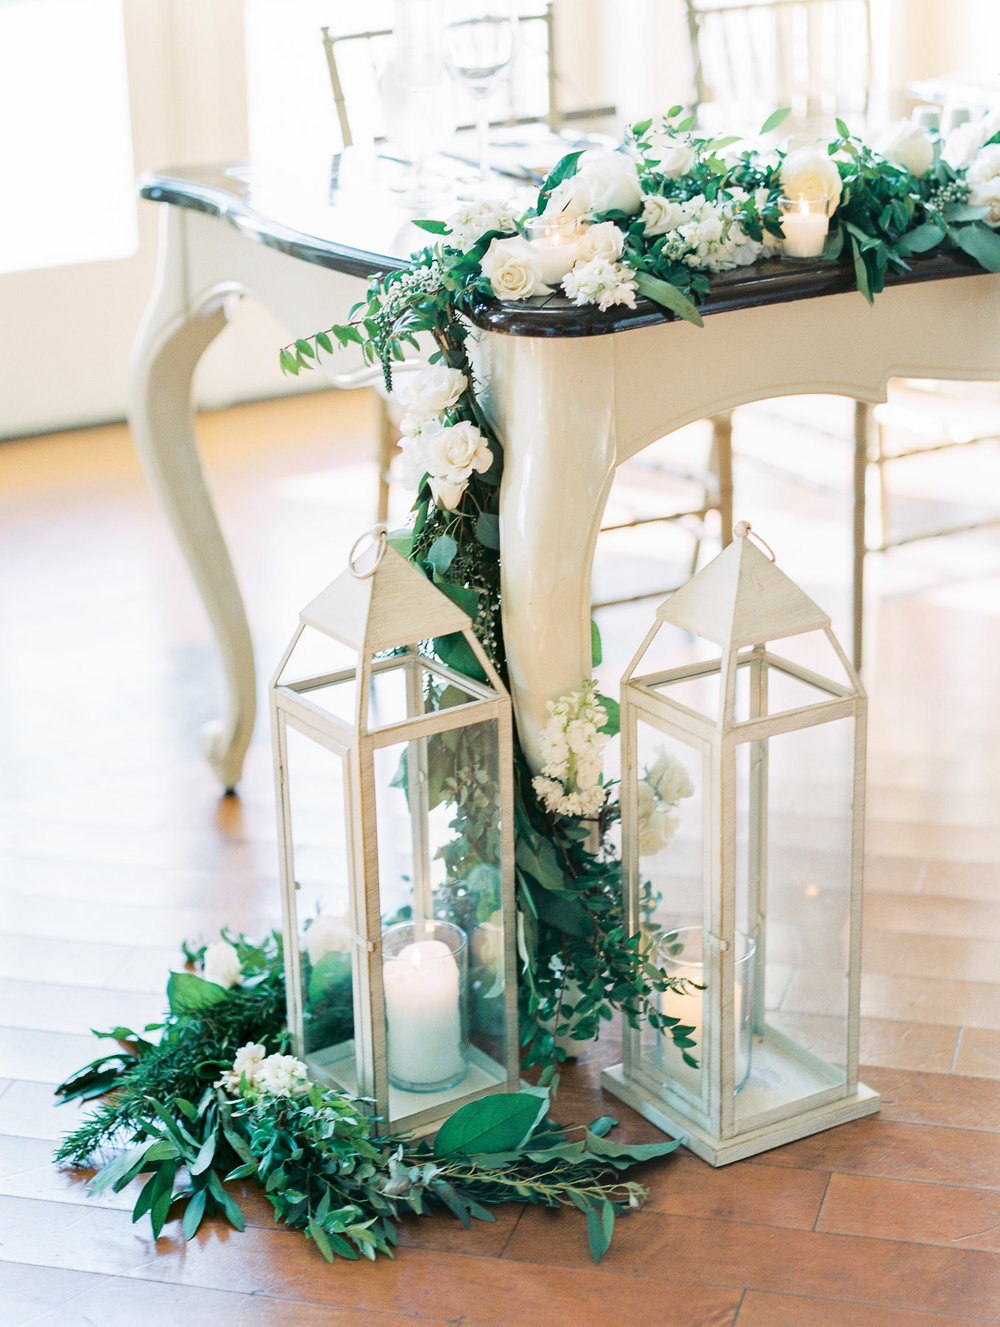 Floral design idea for head table